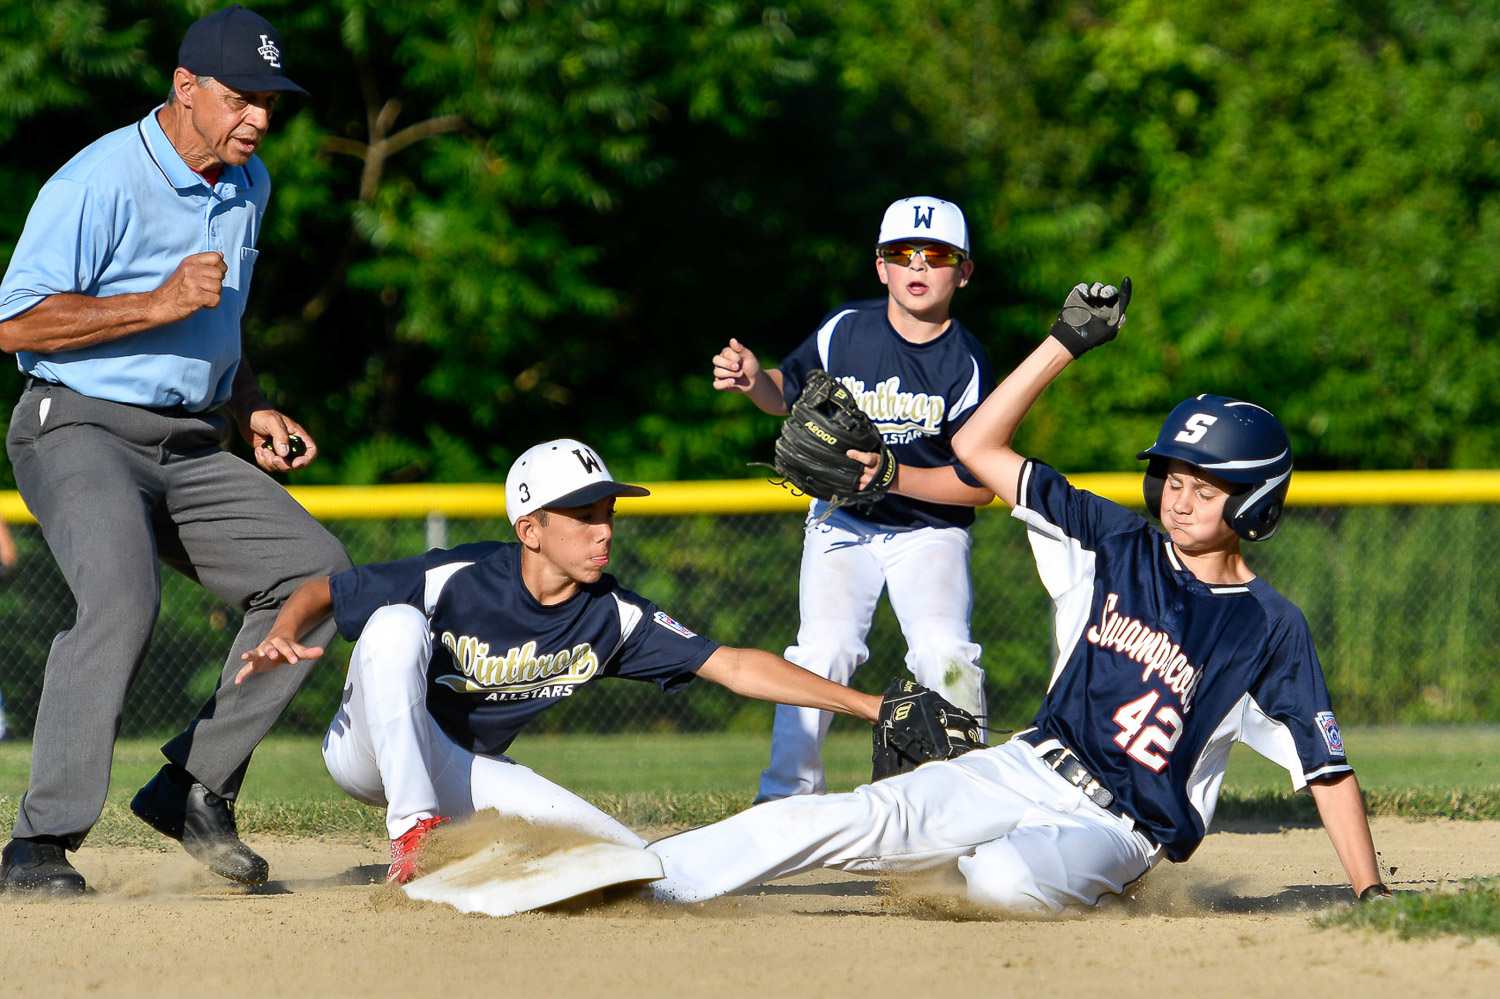 Nikon D500, 1/2500 @ f/4.5, ISO 200, 70-200mm with 1.4x teleconverter  Jansen Landen of the Swampscott Little League all-stars safely slides into second base during their game against Winthrop at Lt. Ross Park in Peabody, Wednesday, July 5, 2017. [Wicked Local Staff Photo / David Sokol]